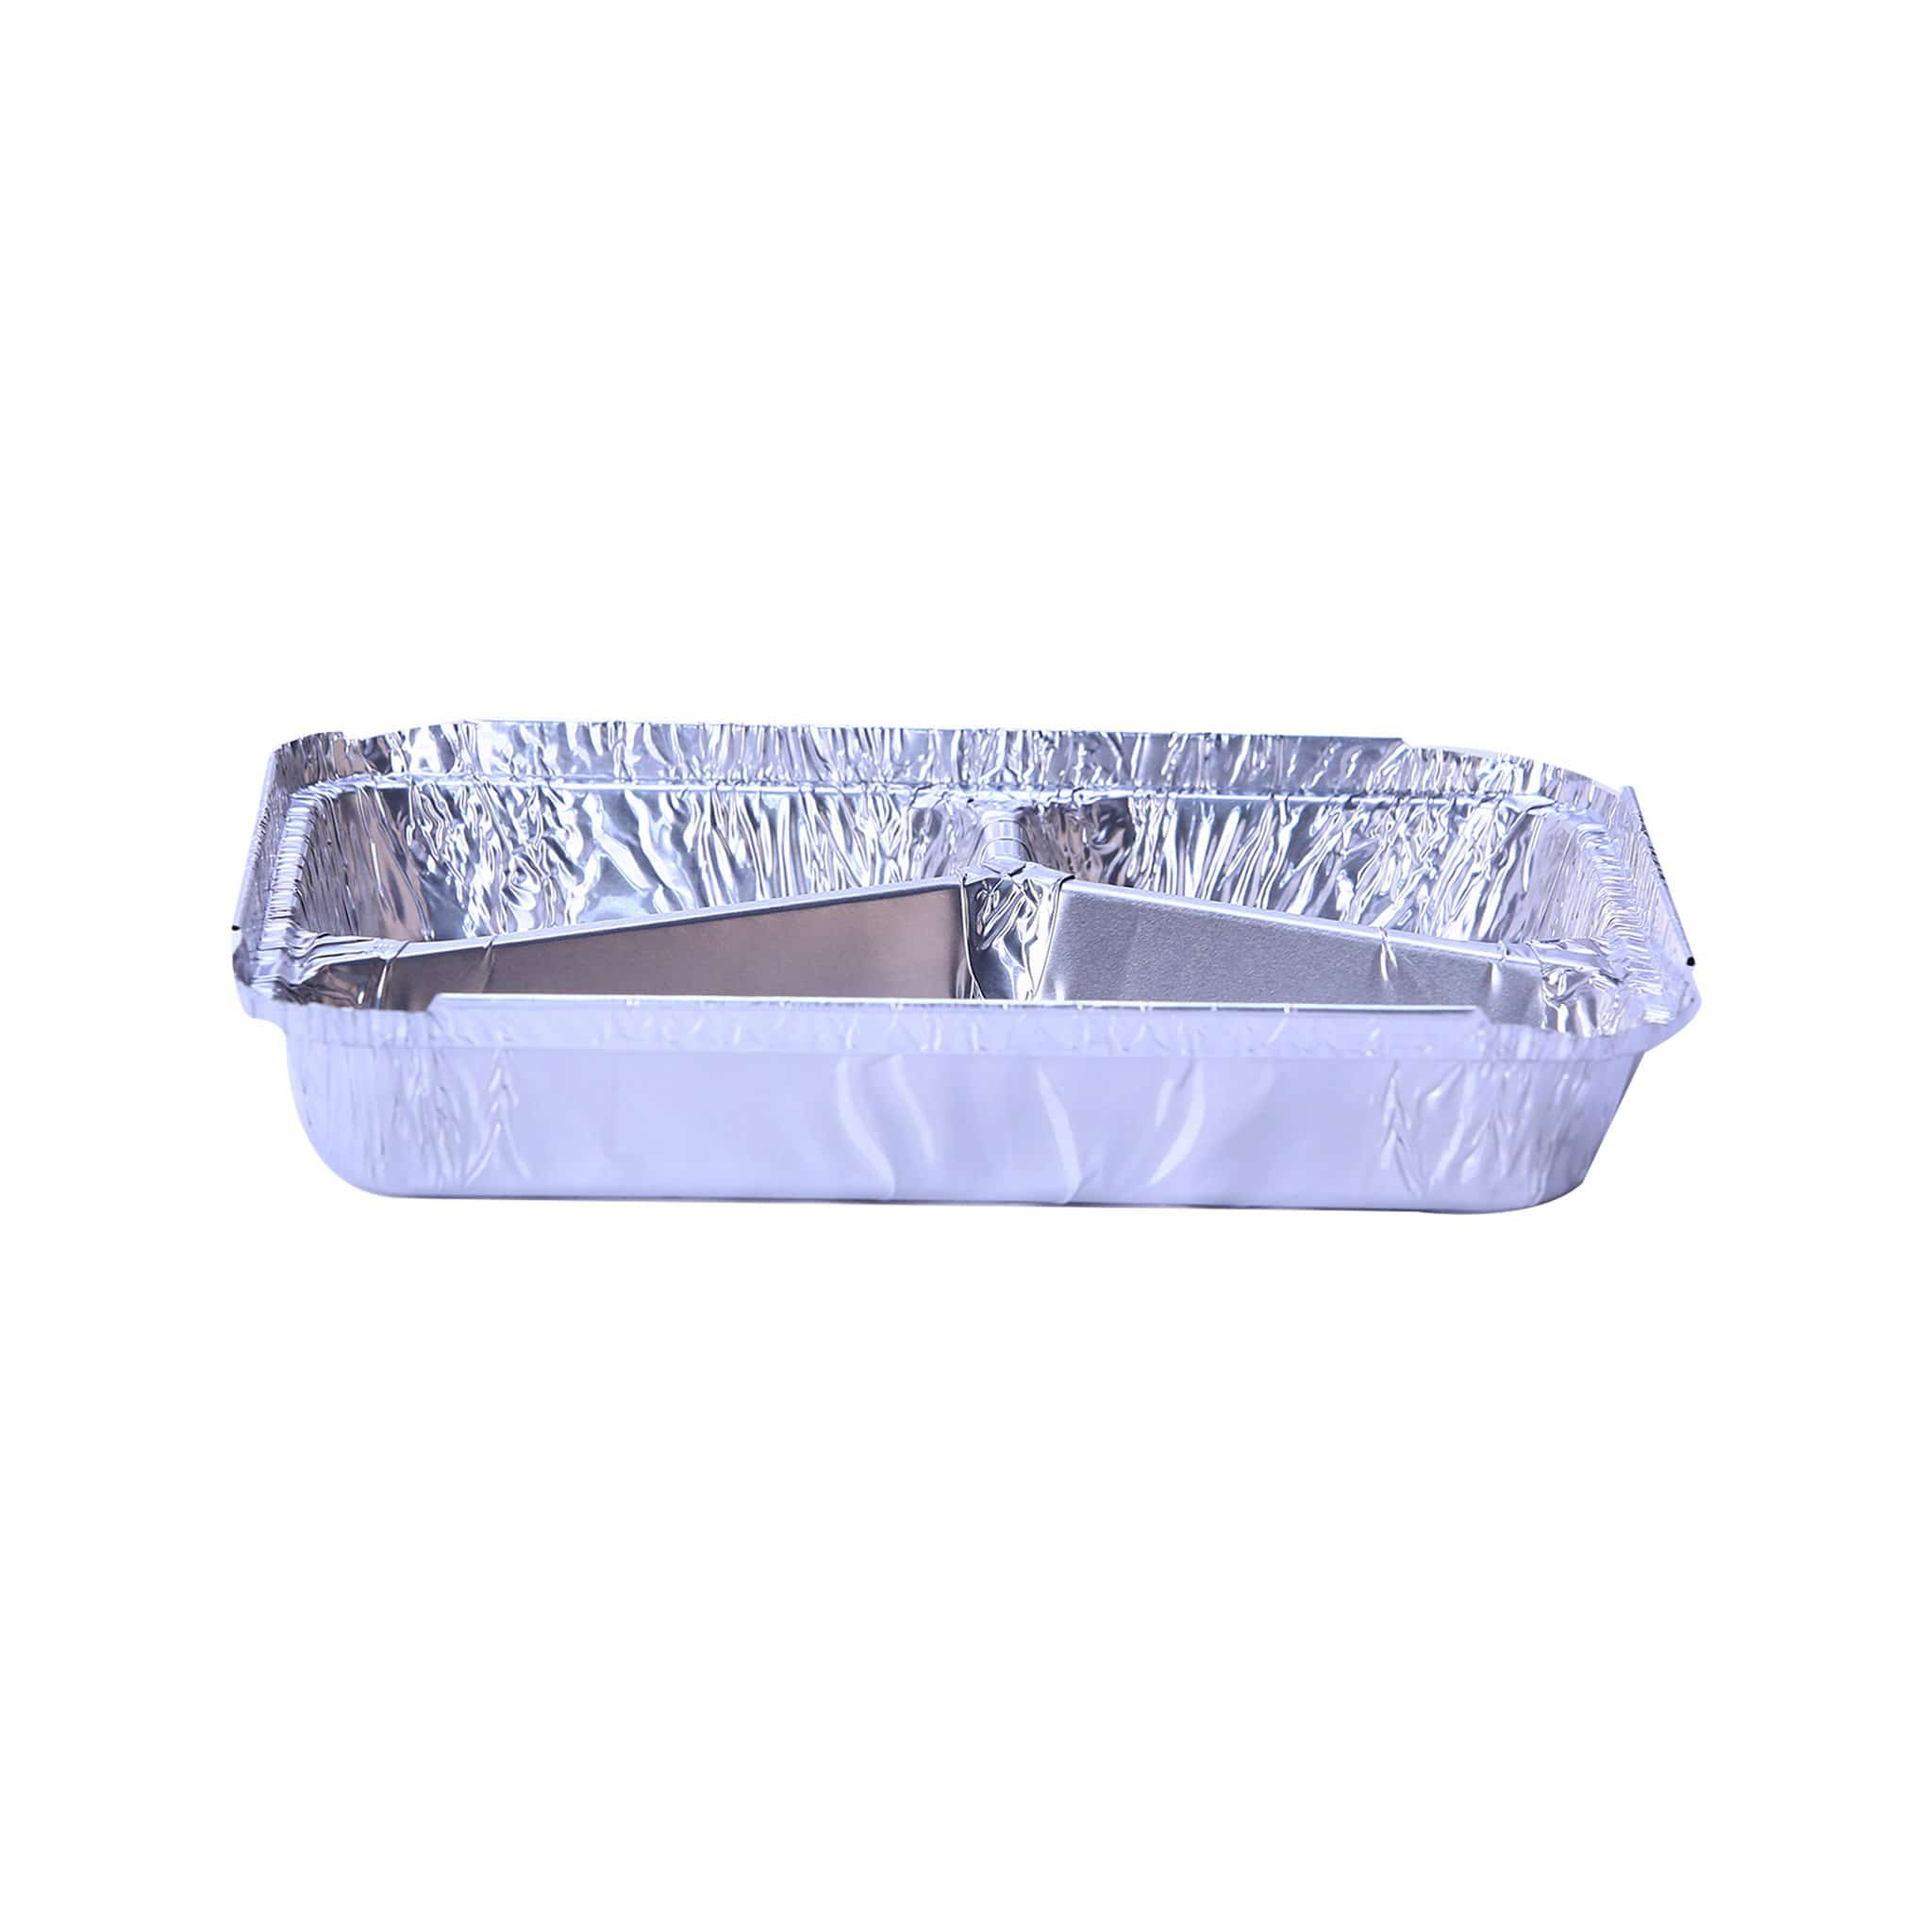 Hotpack | Aluminium Container 3 Compartment Base Only 225x177x30mm | 500 Pieces